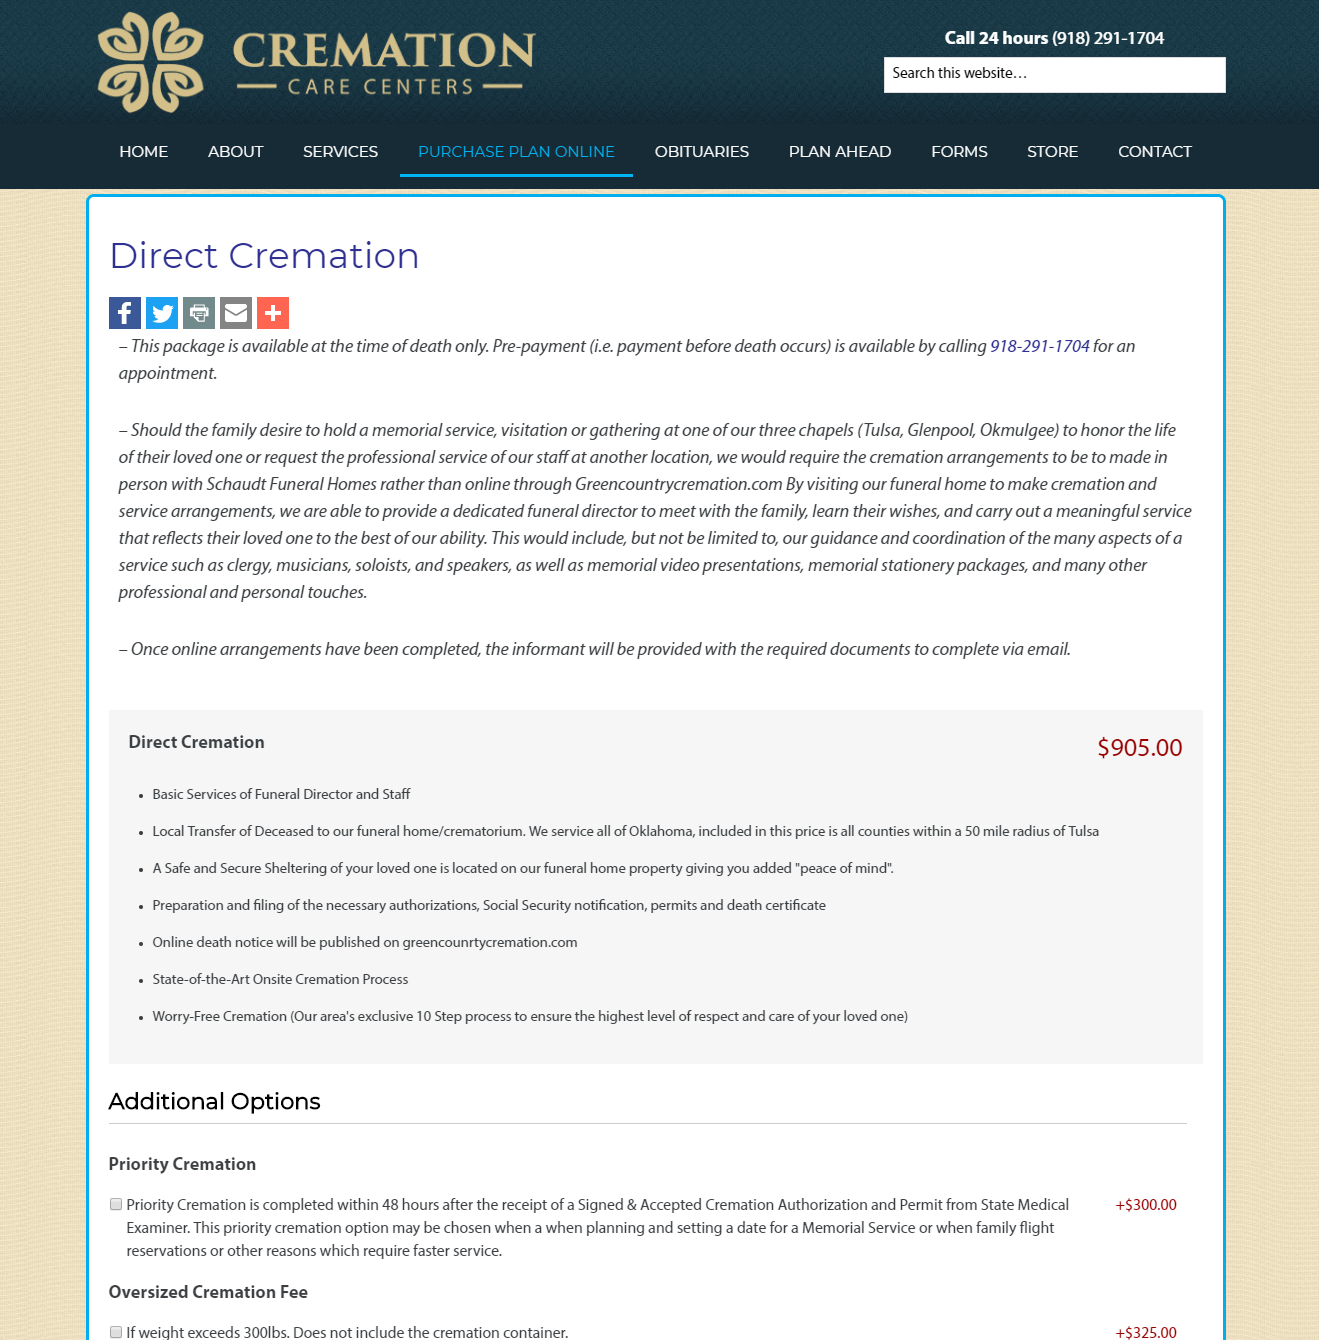 2_direct-cremation